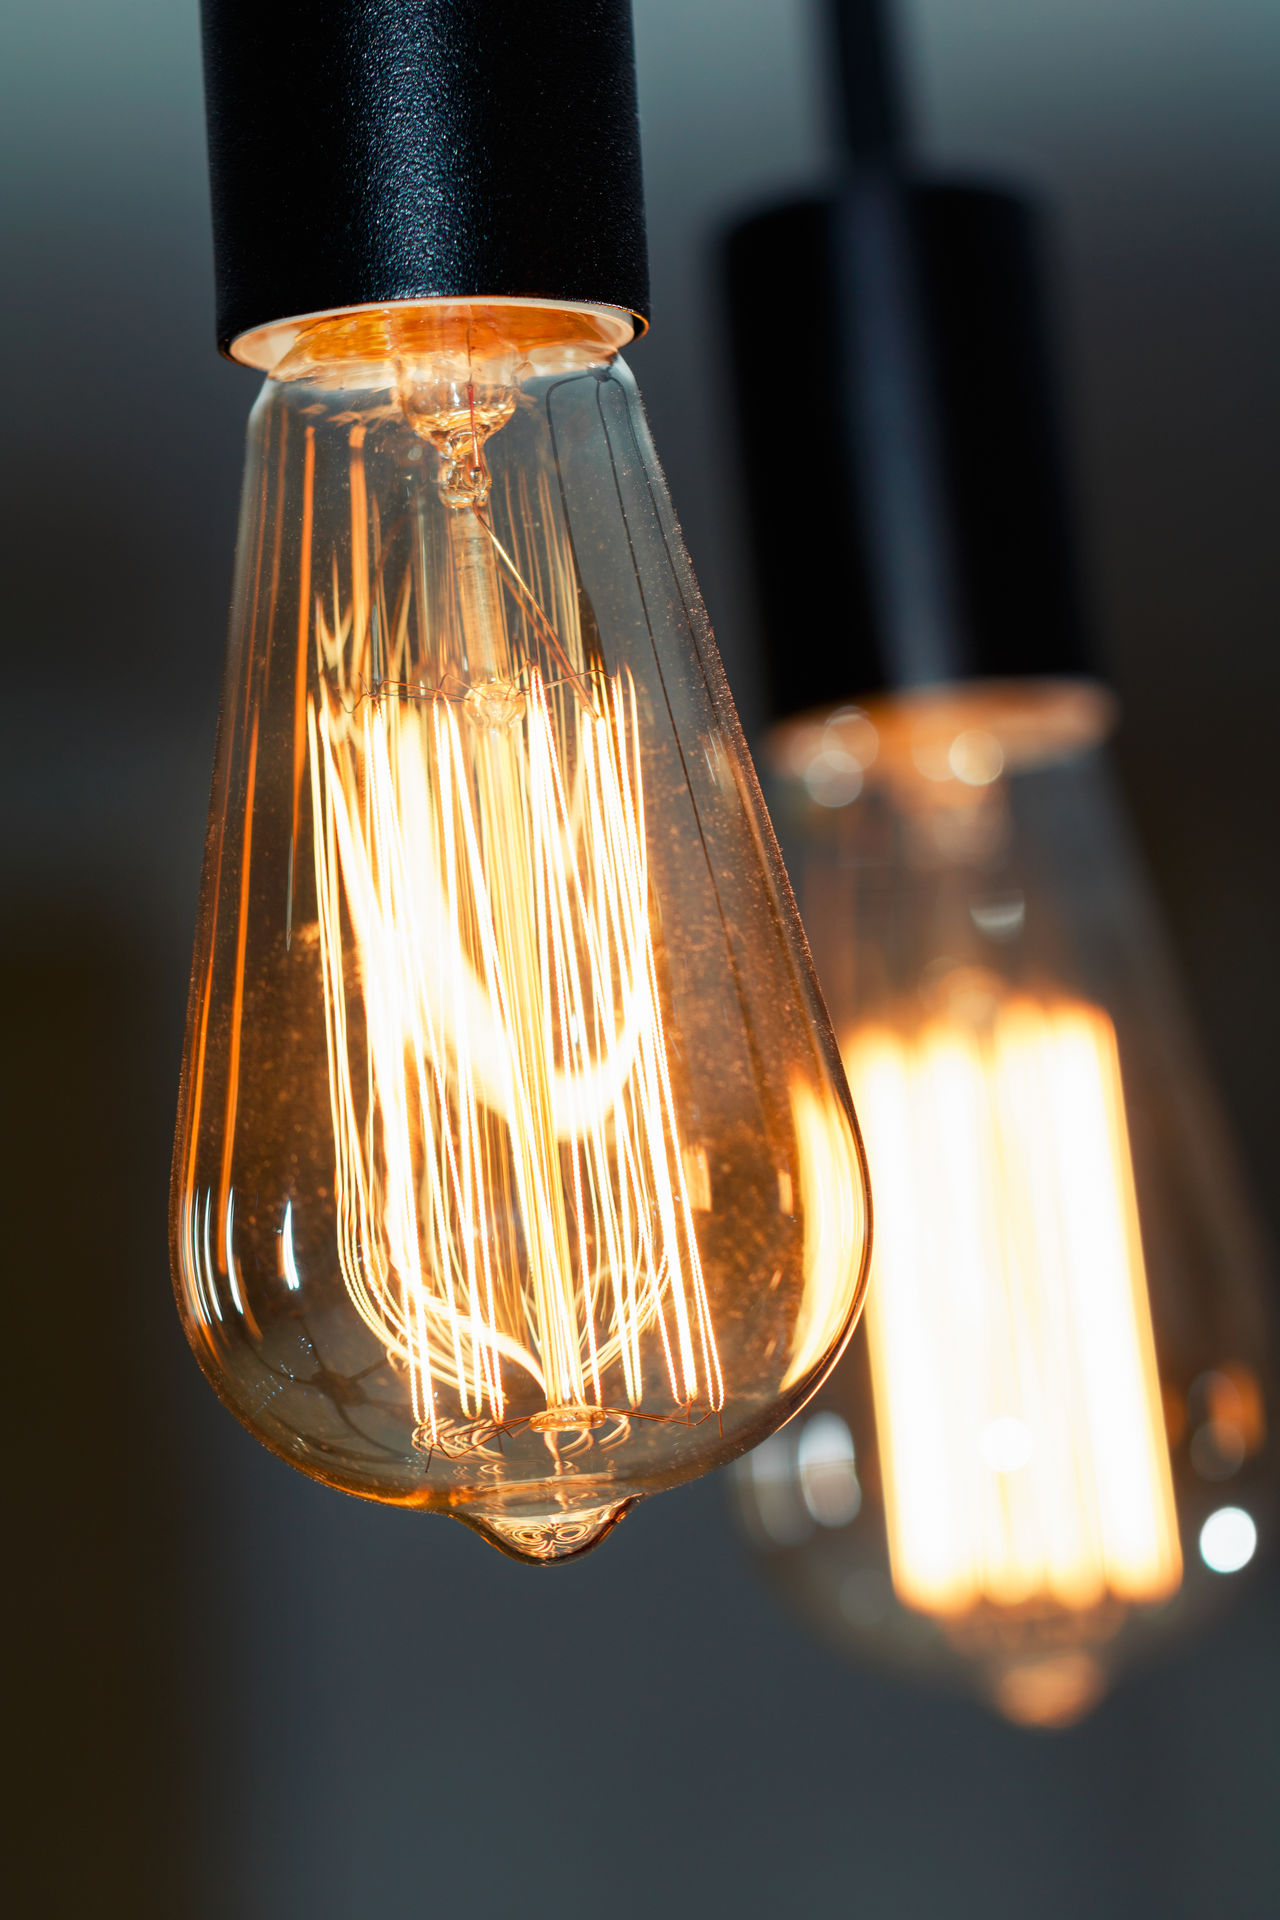 Black Background Bulb Close-up Electricity  Filament Fuel And Power Generation Glowing Hanging Illuminated Innovation Inspiration Light Bulb Lighting Equipment No People Scientific Experiment Single Object Technology